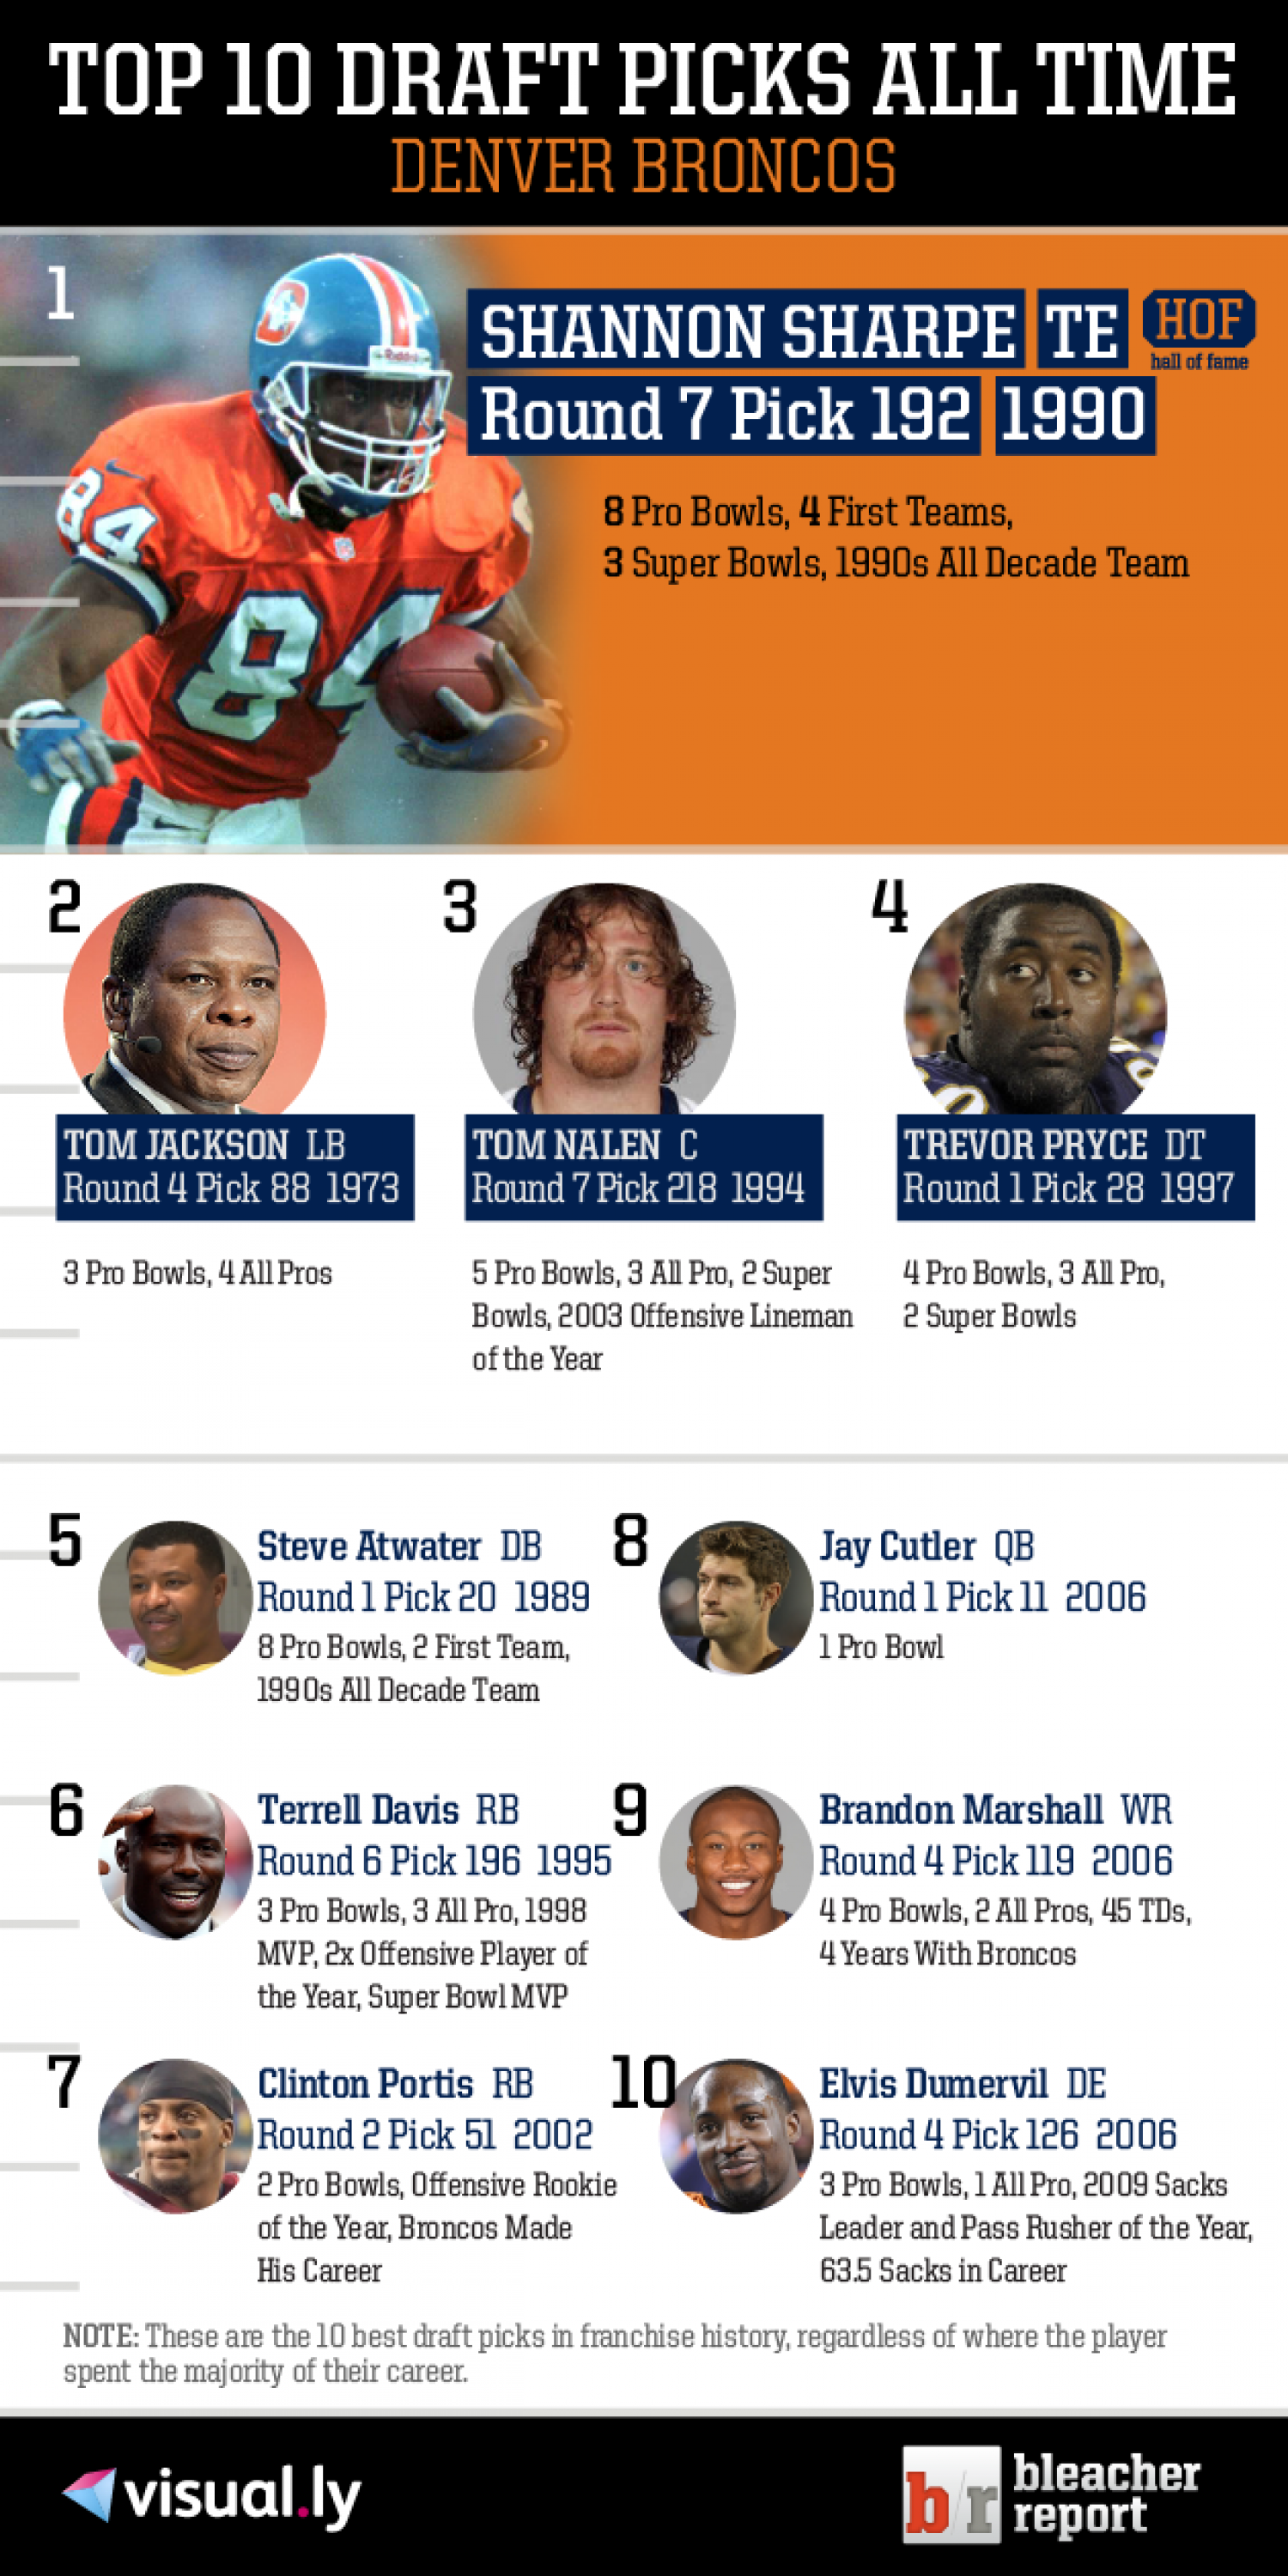 Top 10 Draft Picks of All Time: Denver Broncos Infographic